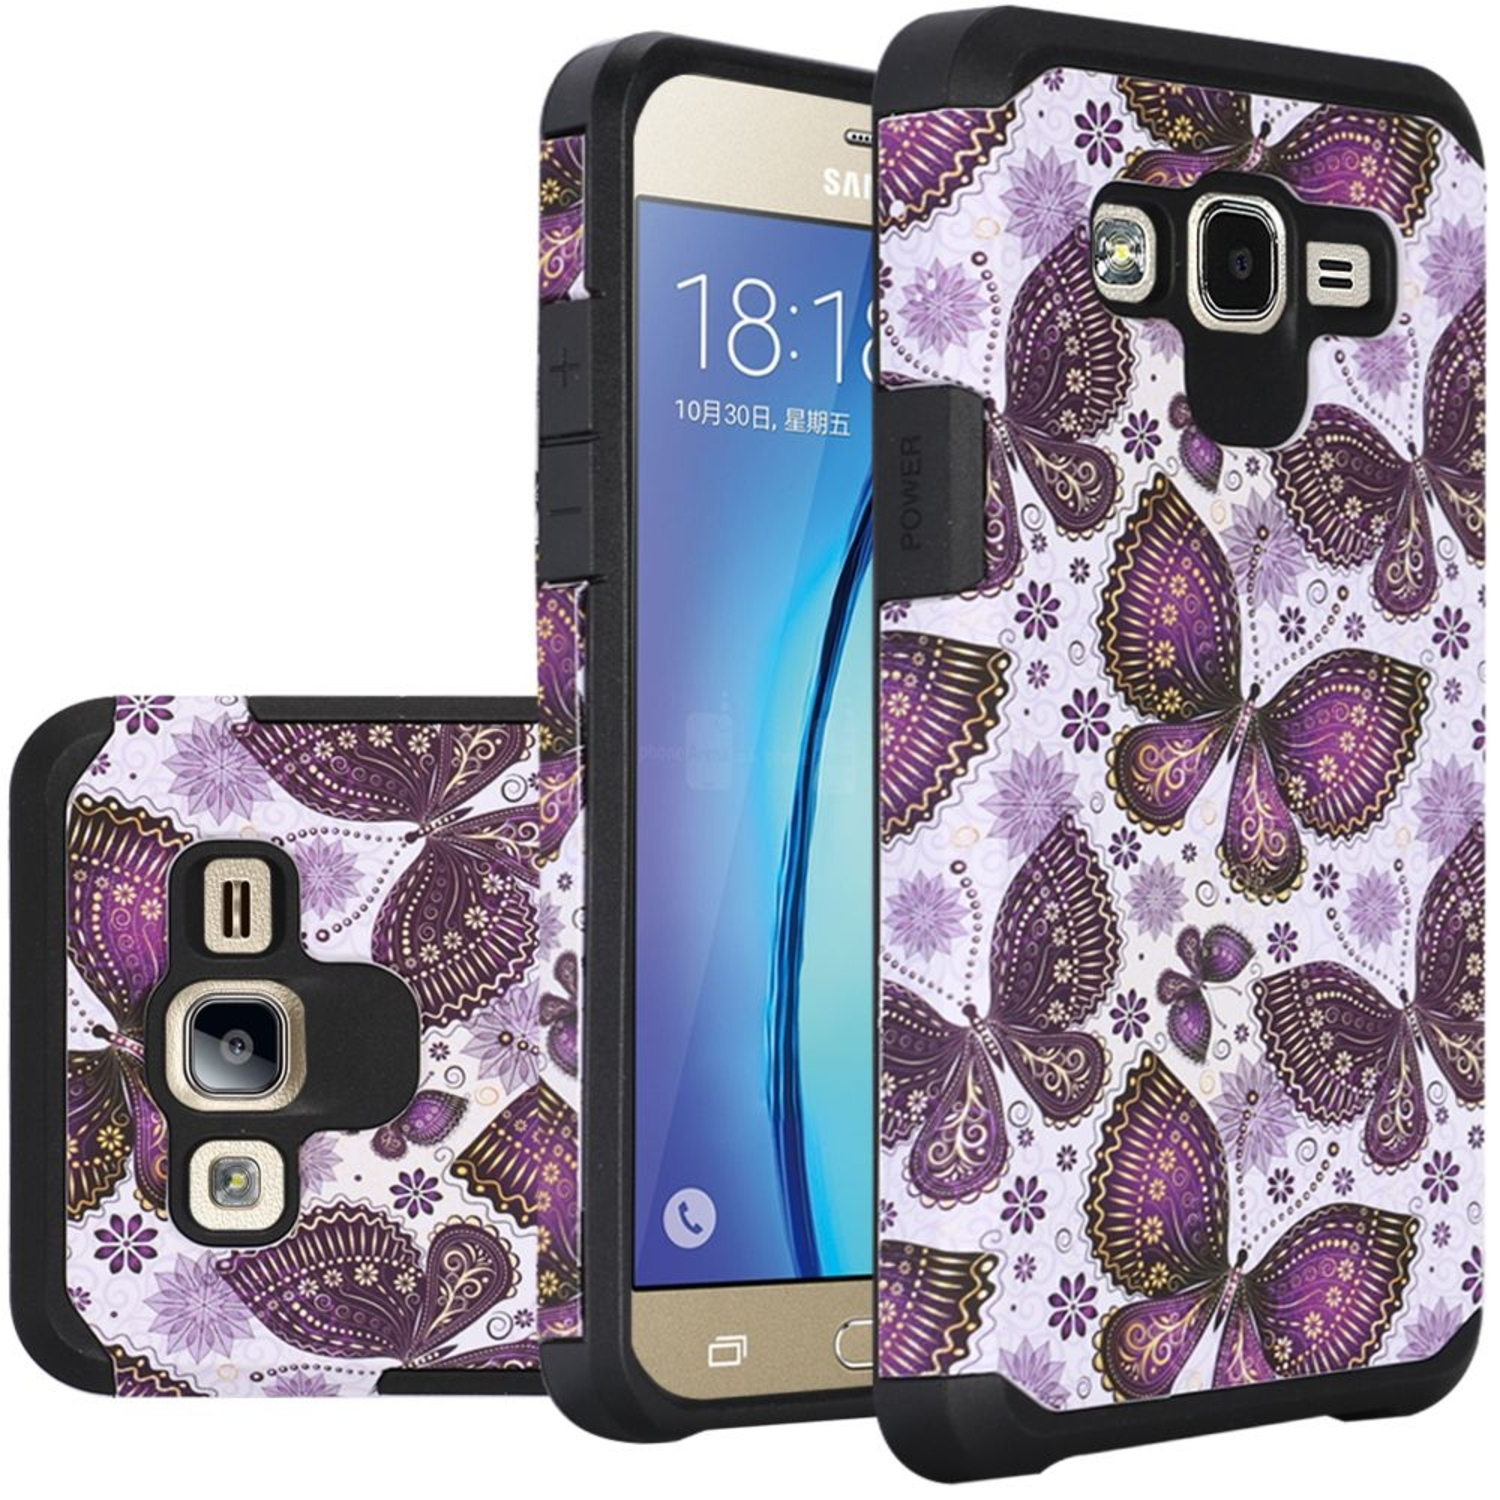 Samsung Galaxy On5 Case, Galaxy On5 Phone Case, by Insten Butterflies Slim Hybrid Dual Layer Hard Plastic/Silicone Cover Case for Samsung Galaxy On5 - White/Purple